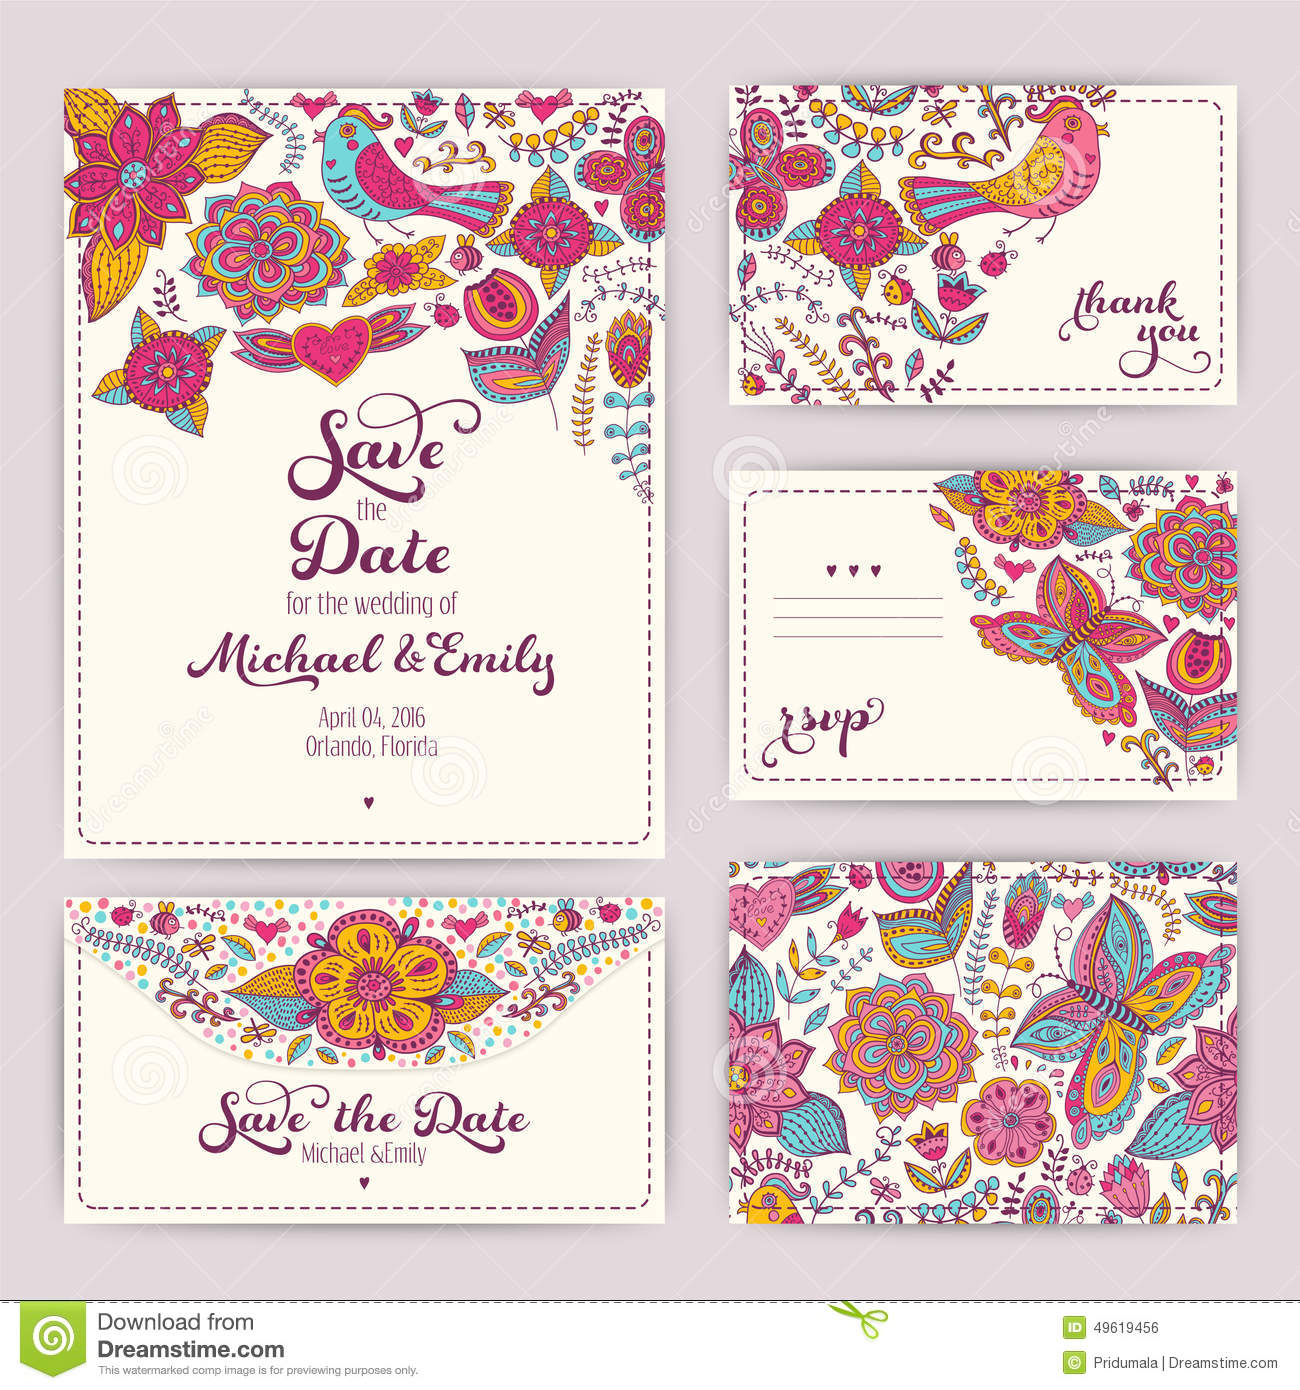 Printable Wedding Invitation Template: Invitation, Envelope, Th ...